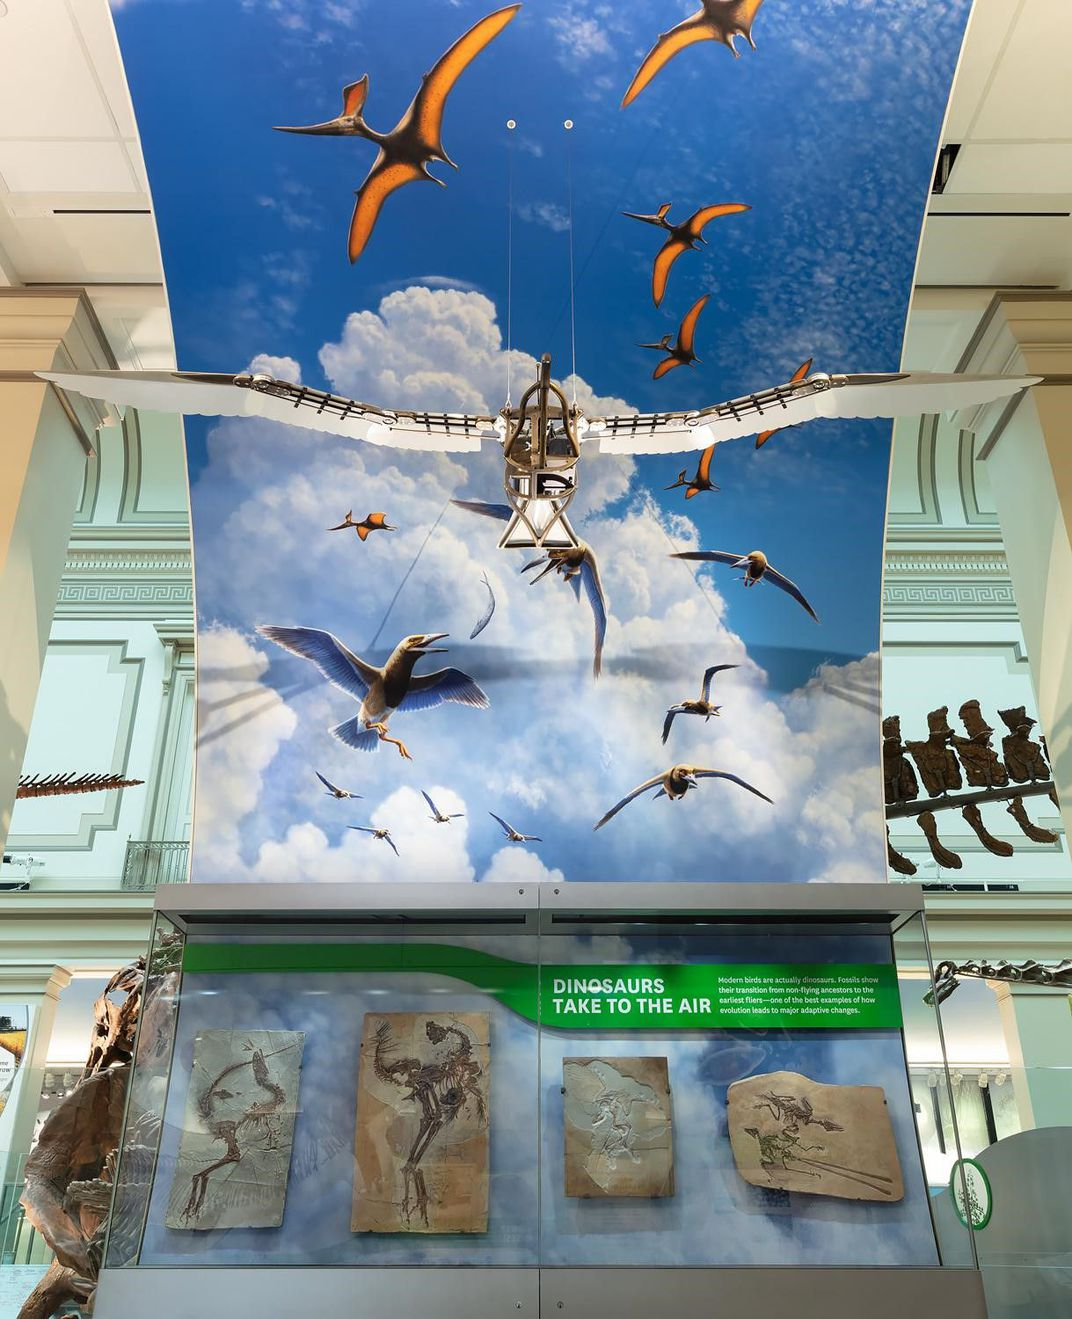 A museum exhibit display of flying dinosaurs.